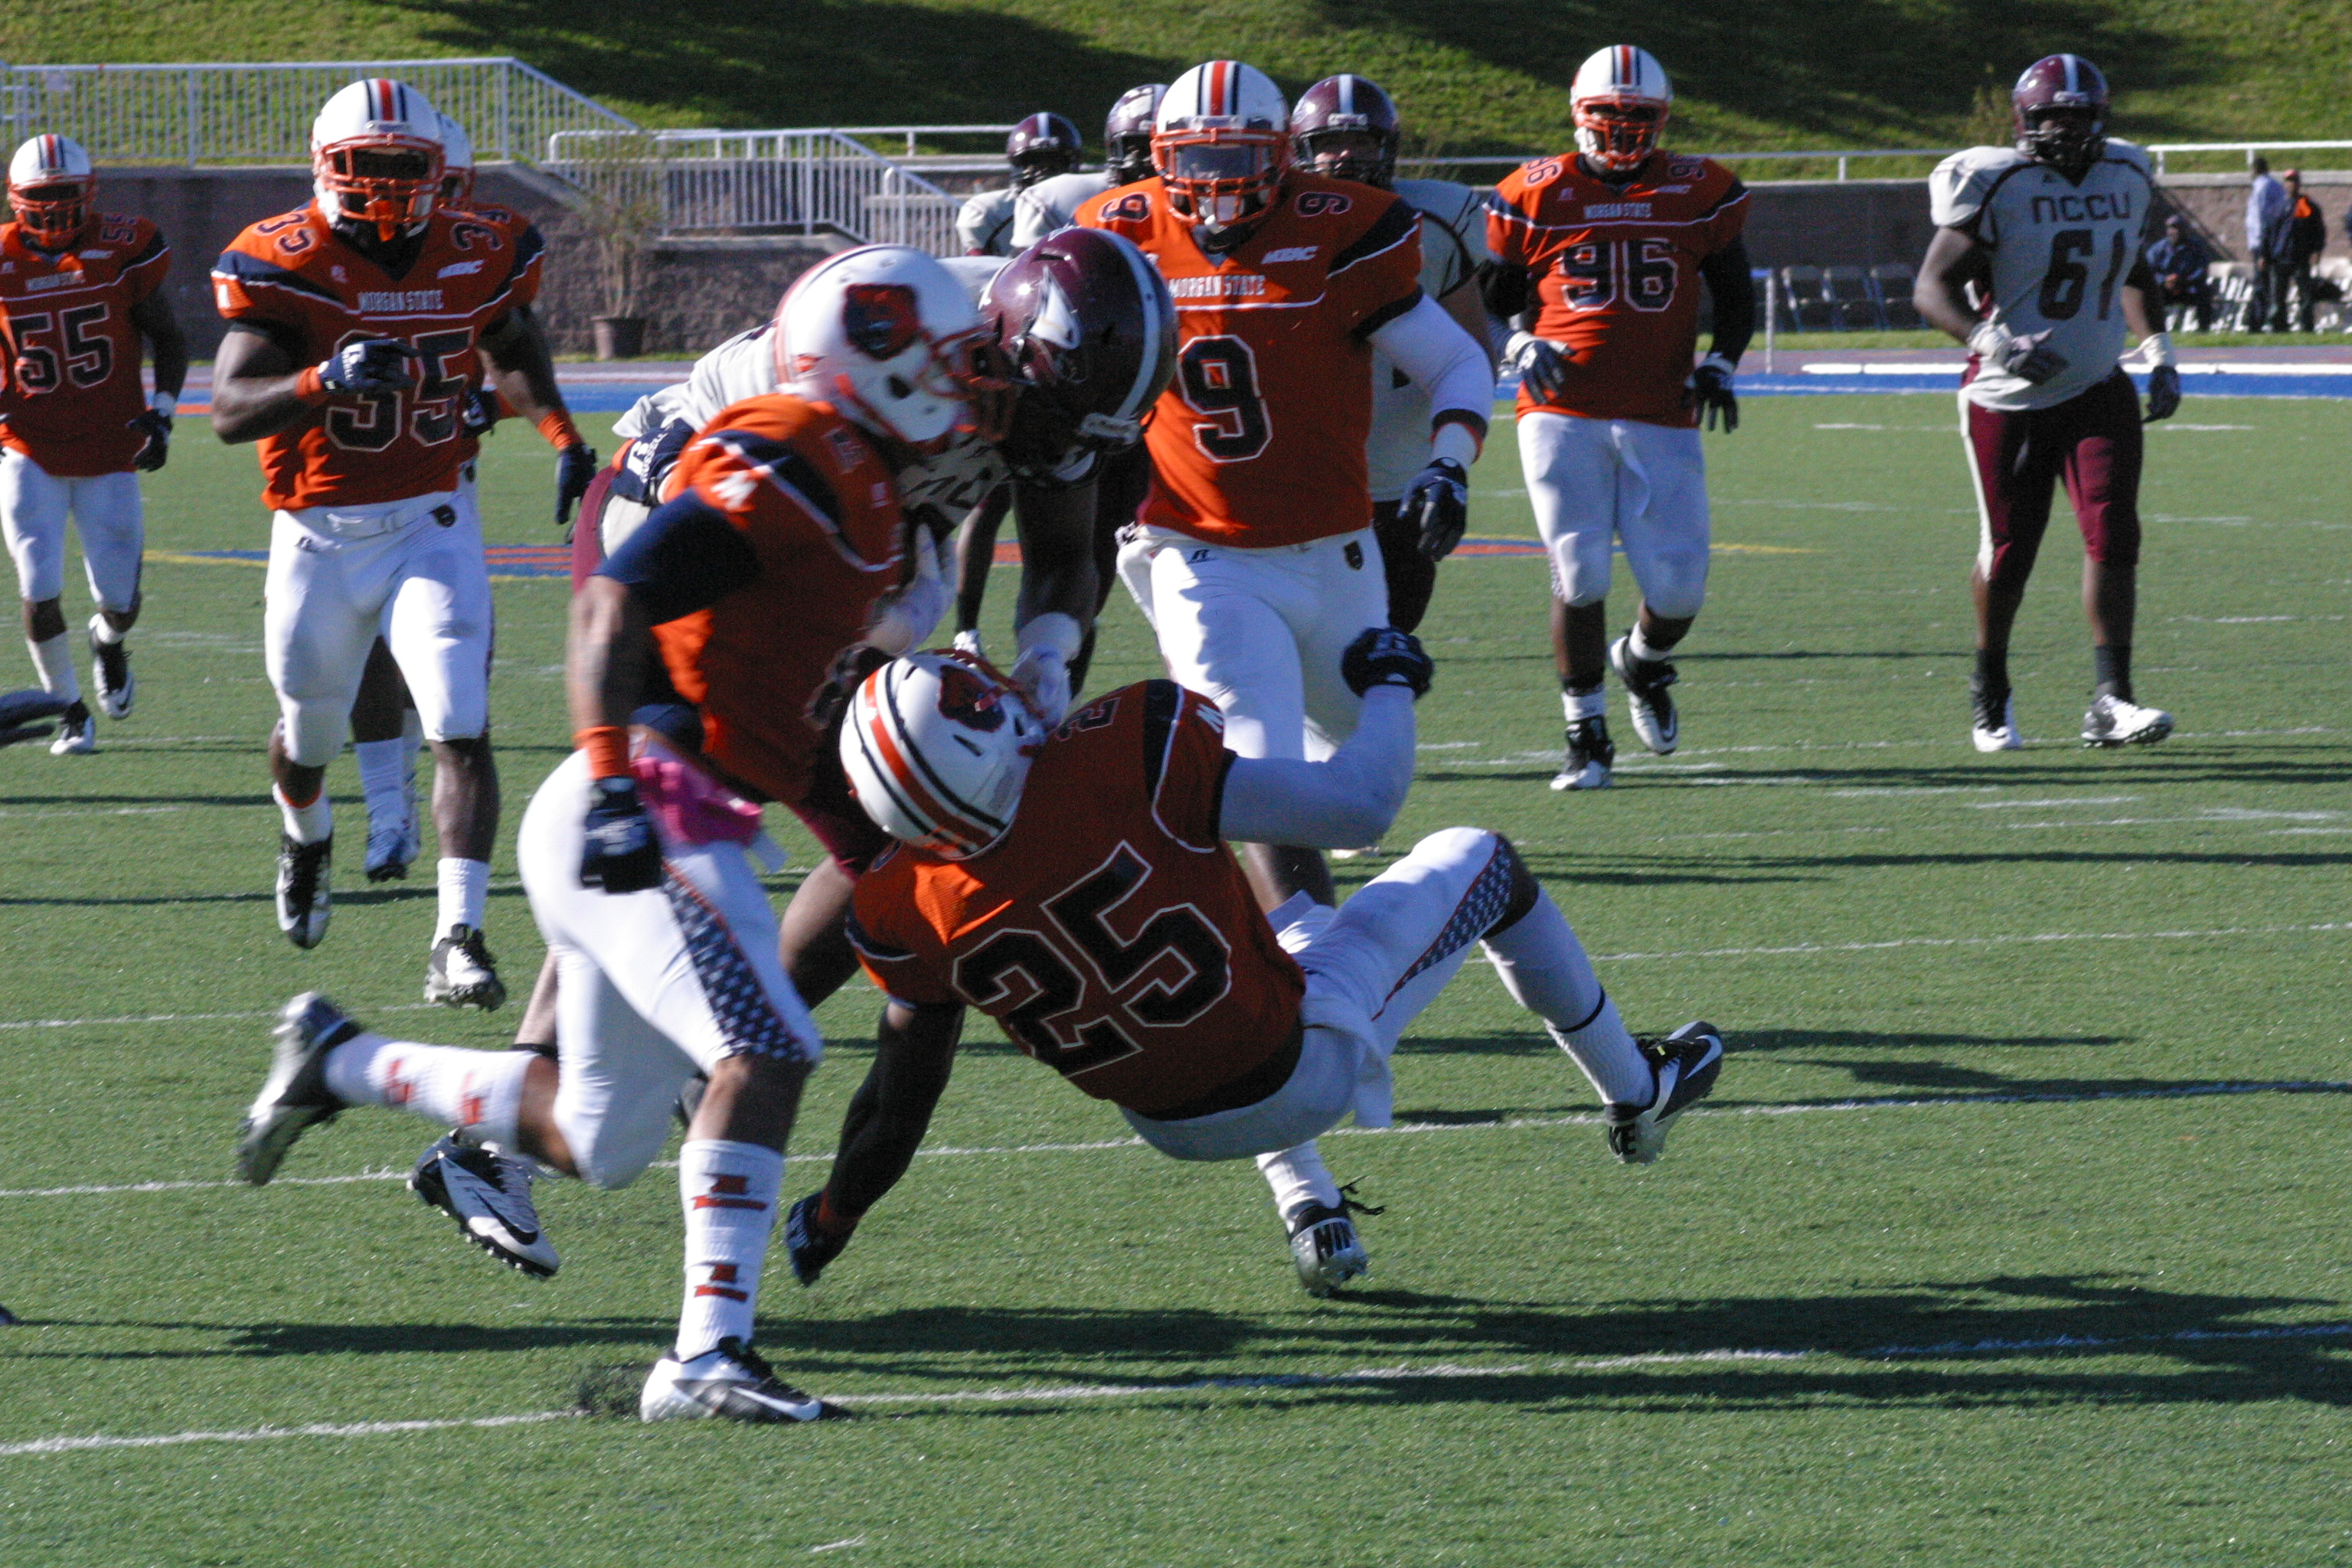 NCCU vs. Morgan, 10/13/2012